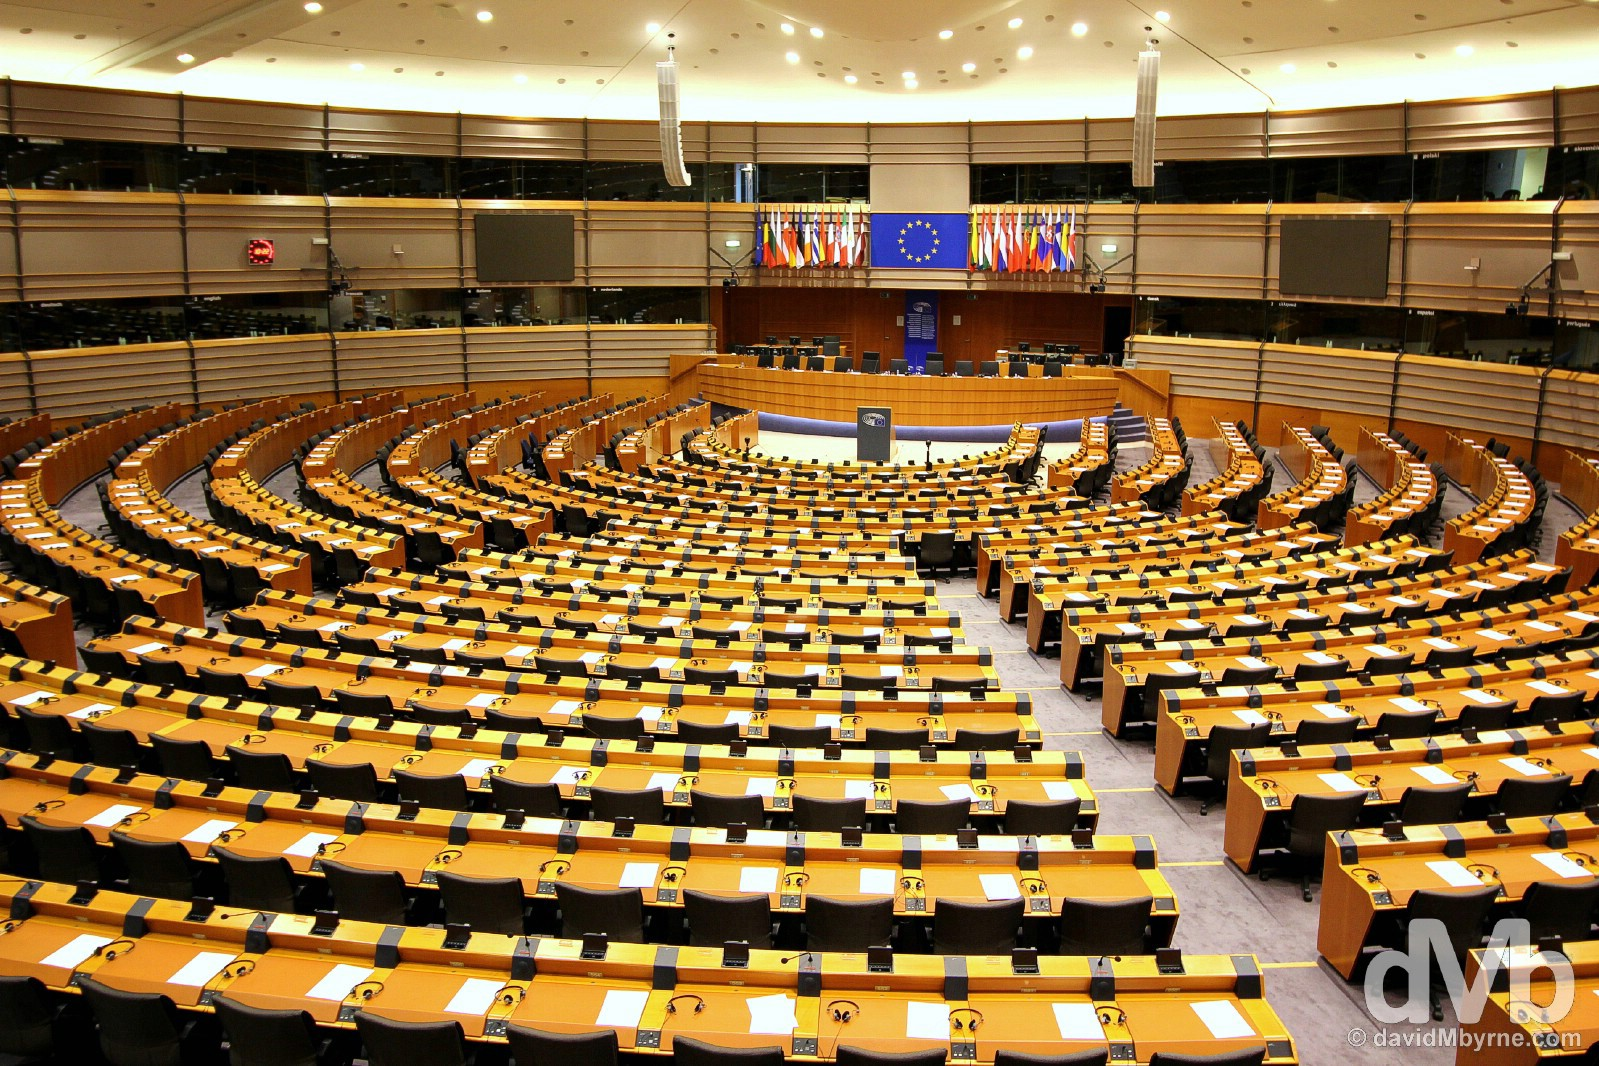 The Hemicycle of the EU Parliament in Brussels, Belgium. January 14, 2016.